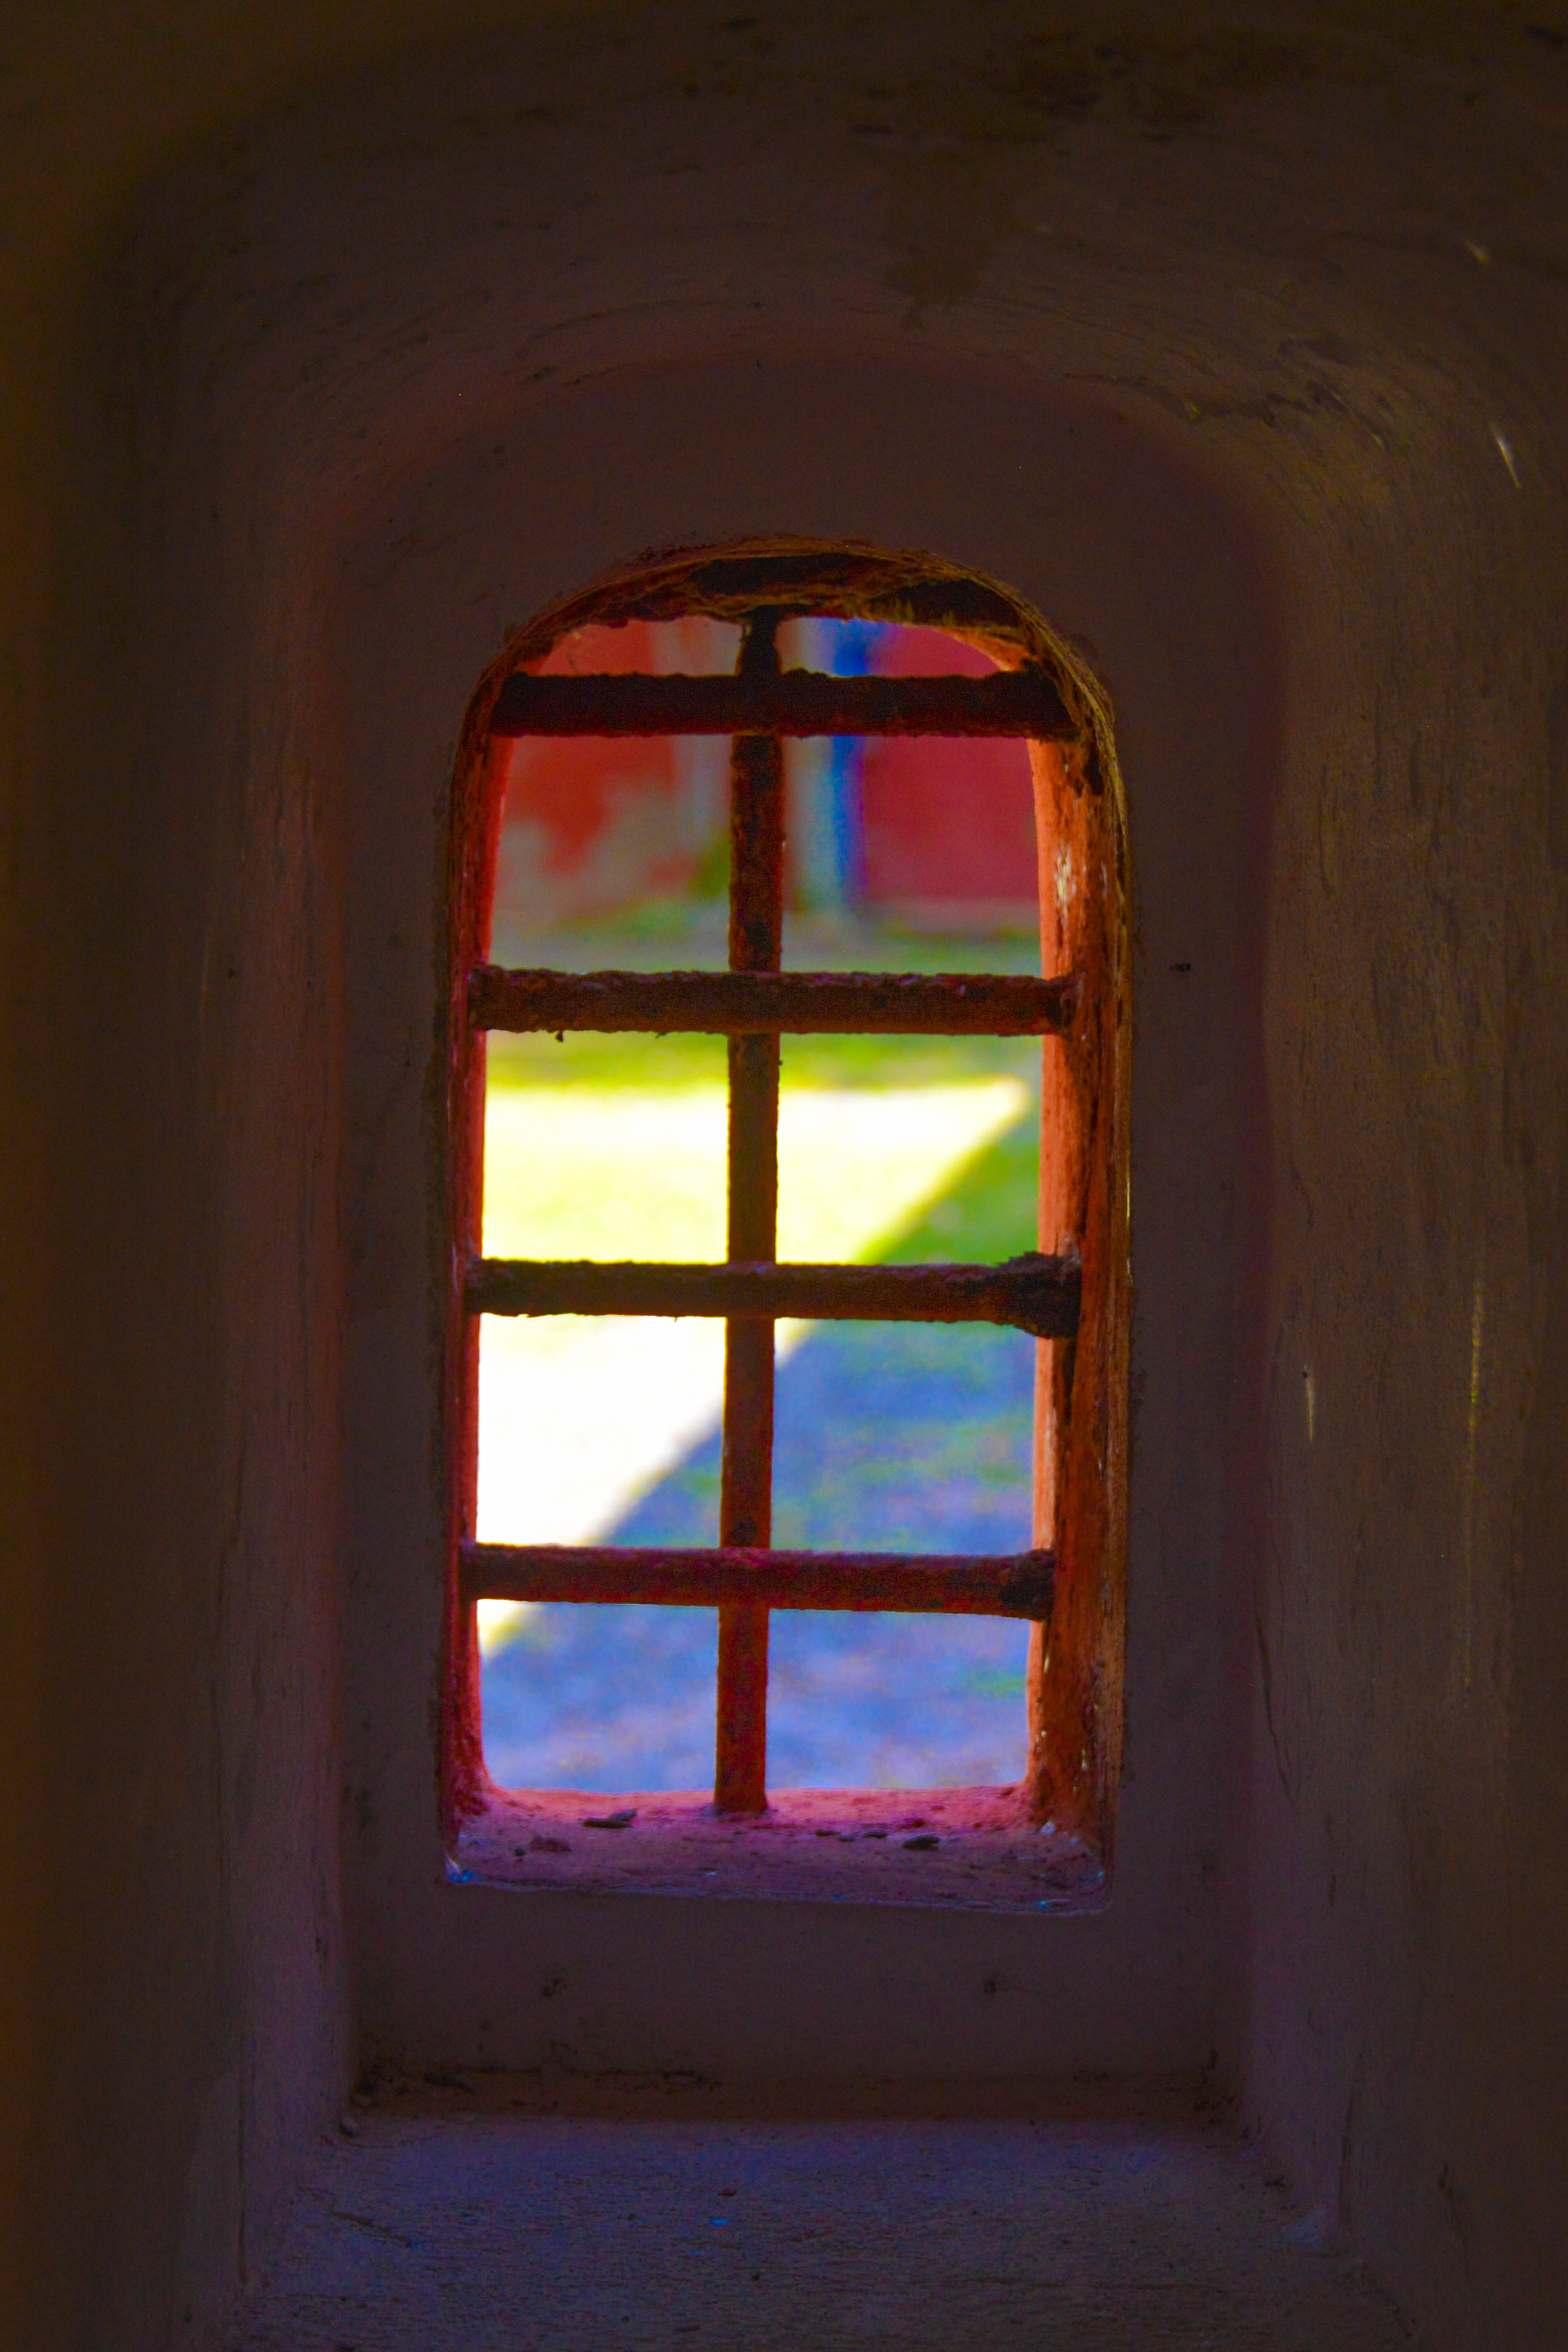 for views, and breeze and light, the old windows of St. Croix offer a unique view of the world.